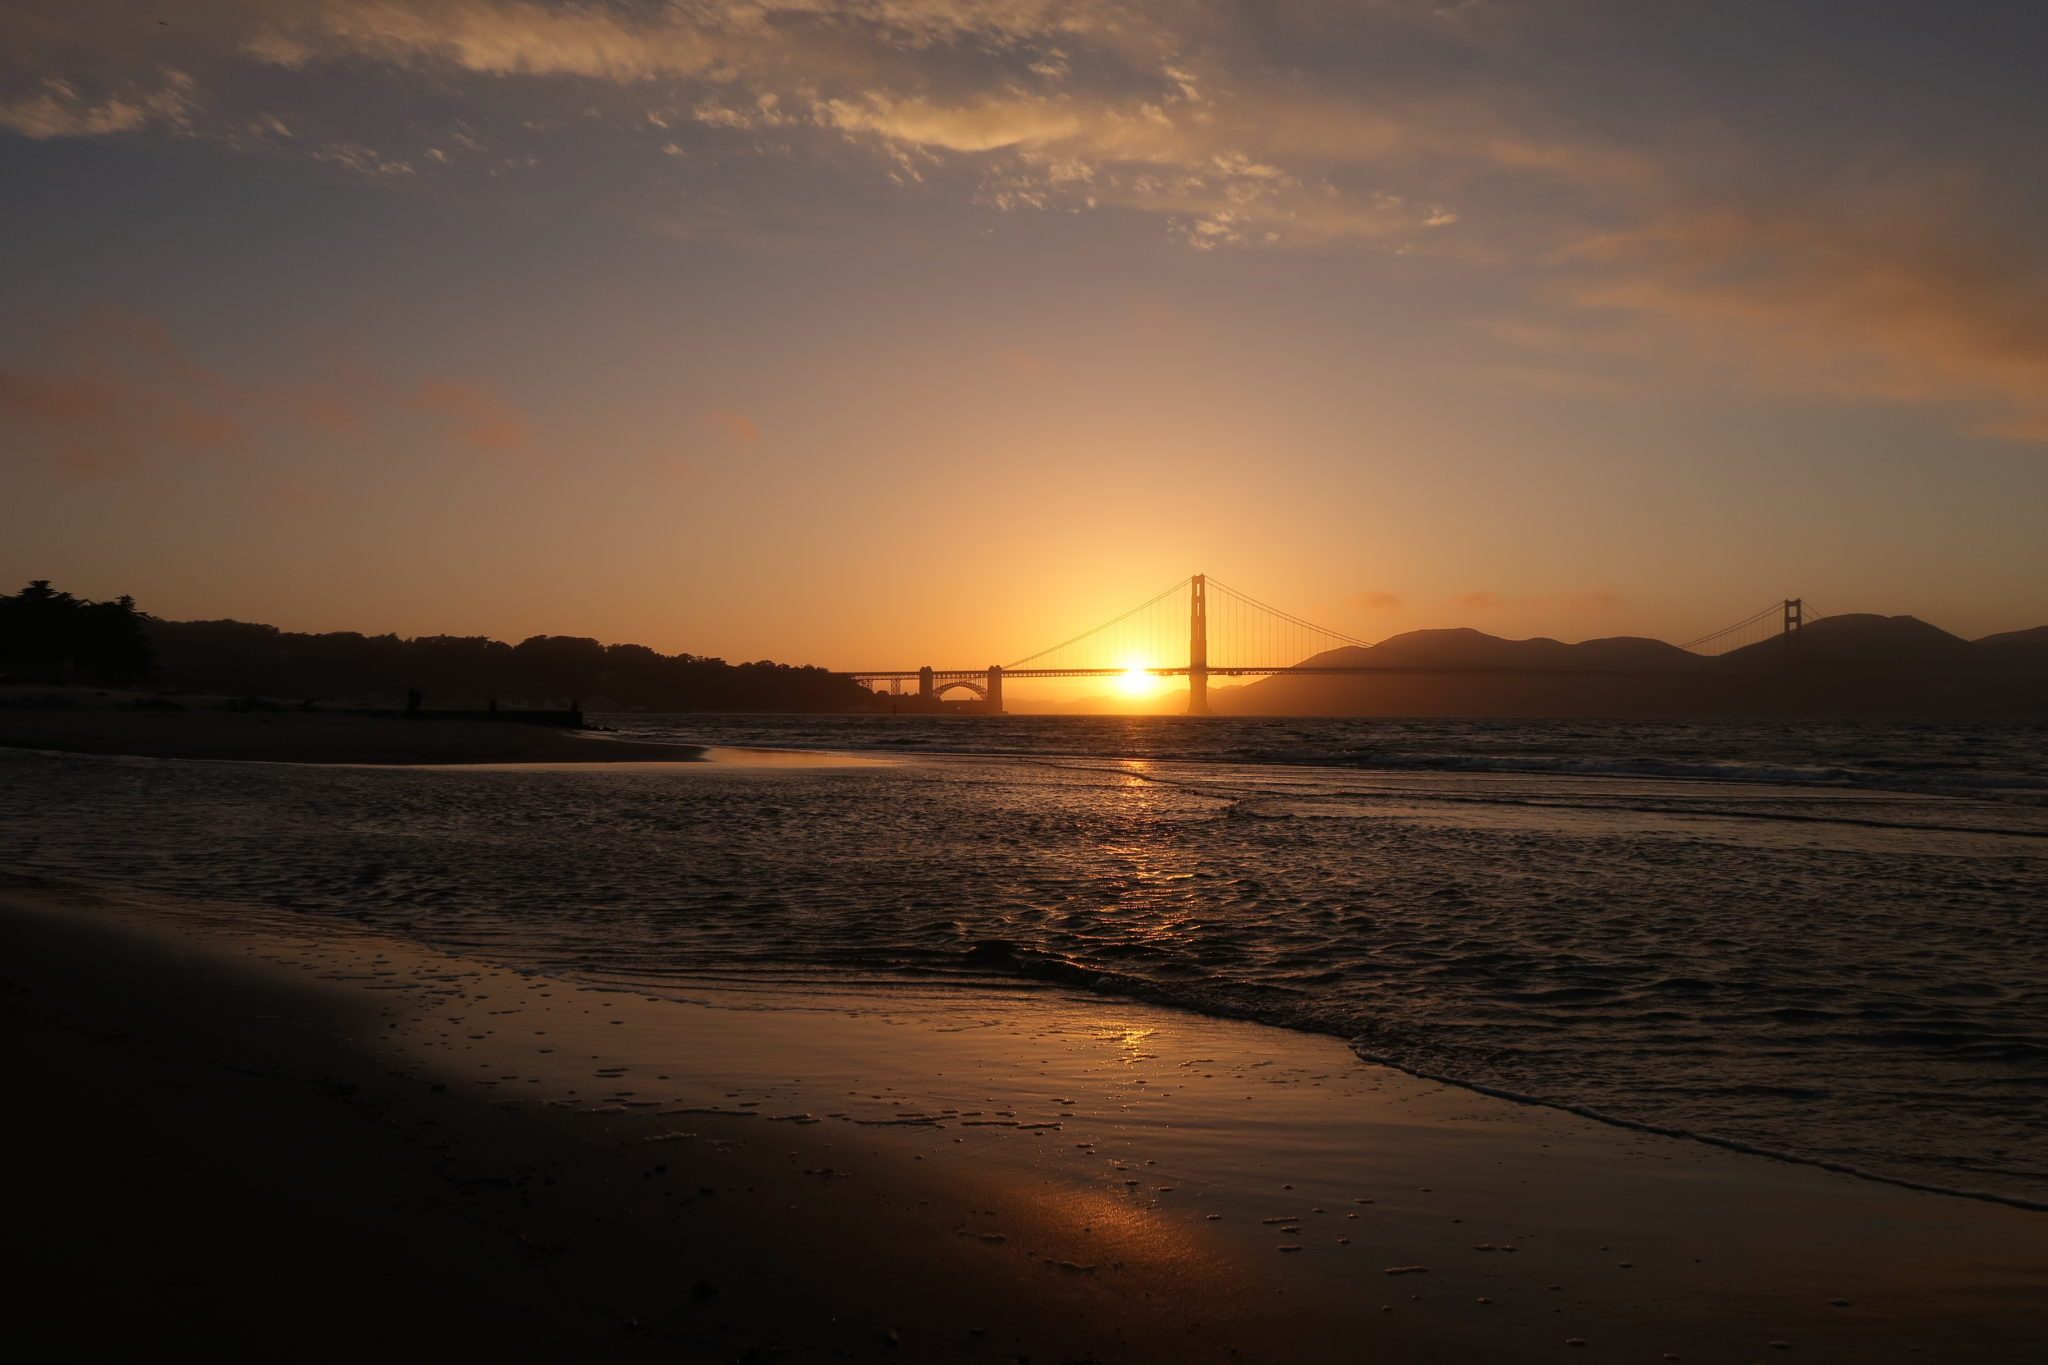 Atardecer en San Francisco, California.